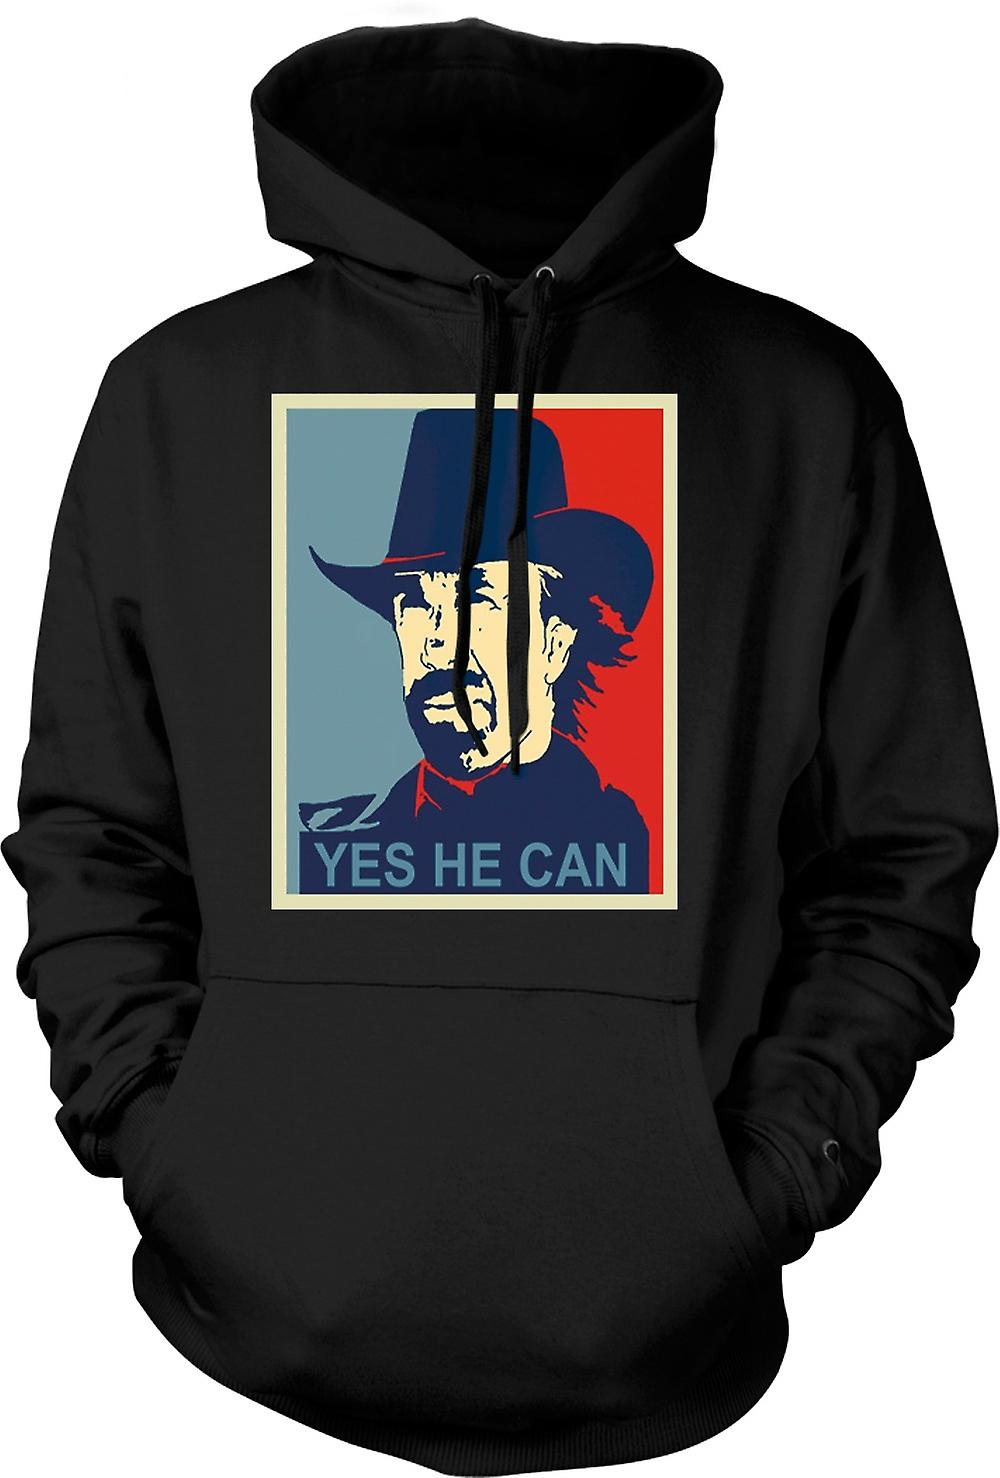 Mens Hoodie - Chuck Norris Obama - Yes He Can